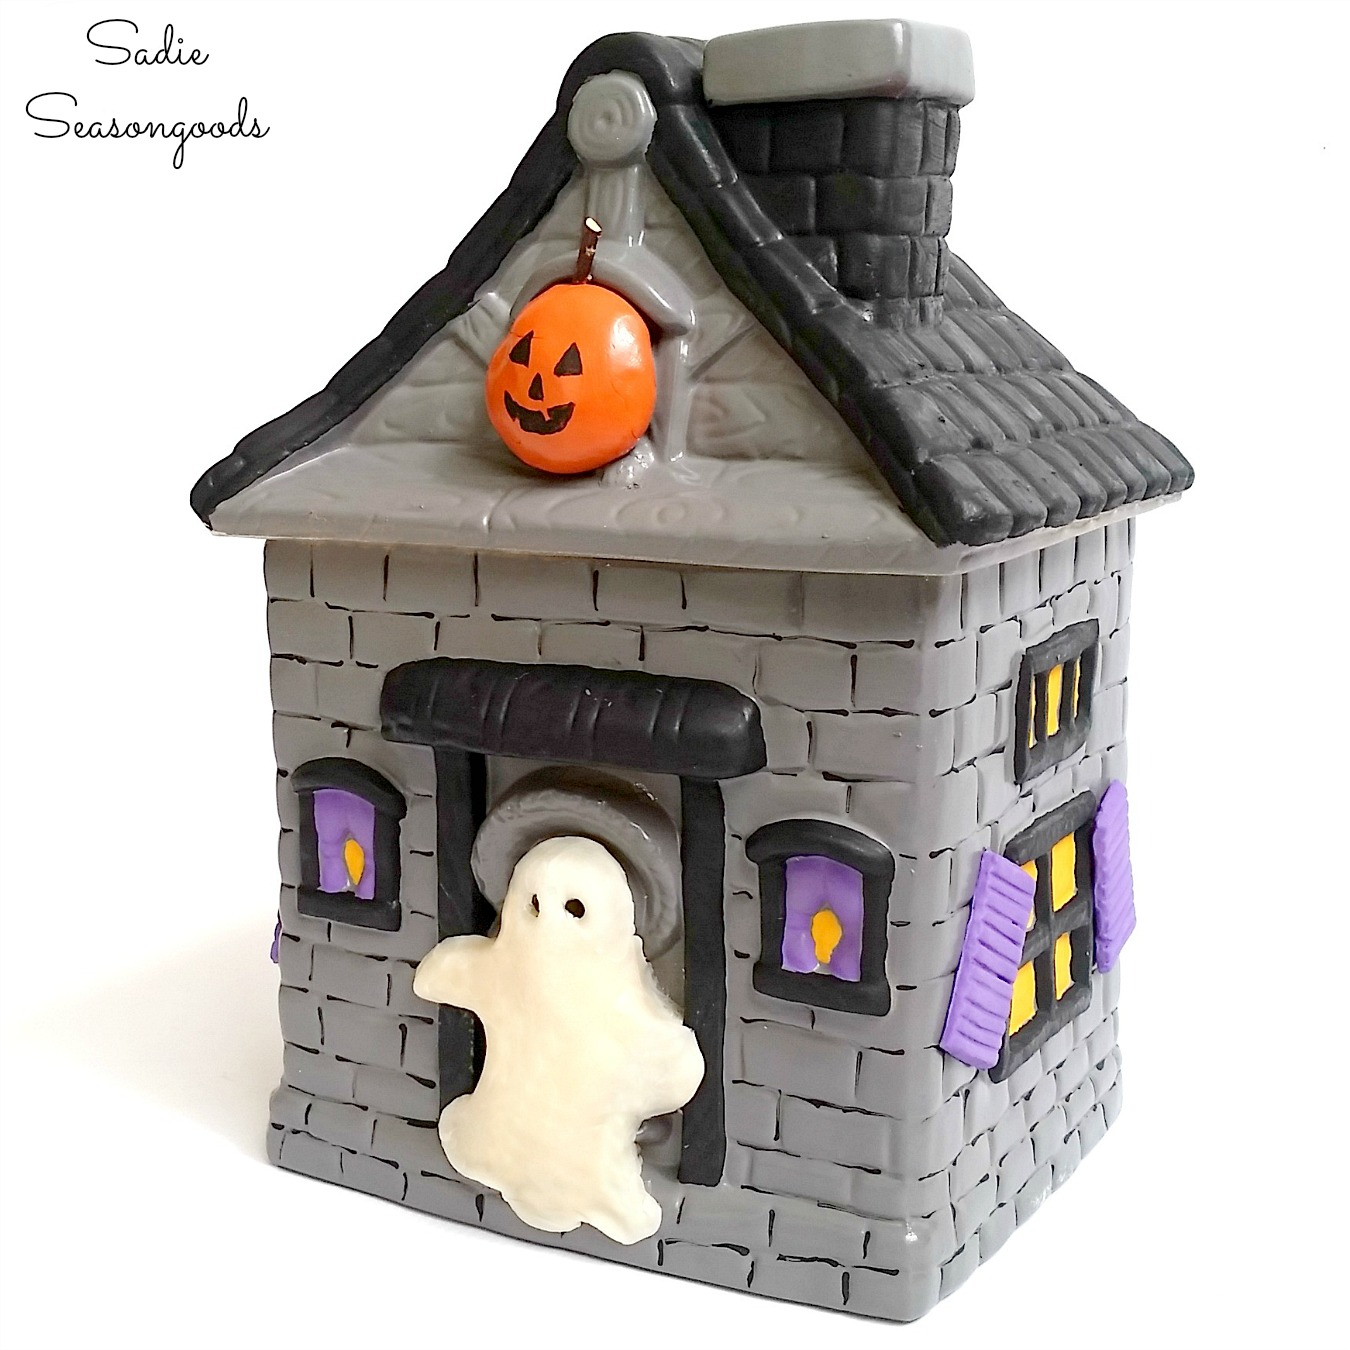 Halloween Cookie Jar and Haunted House Decor